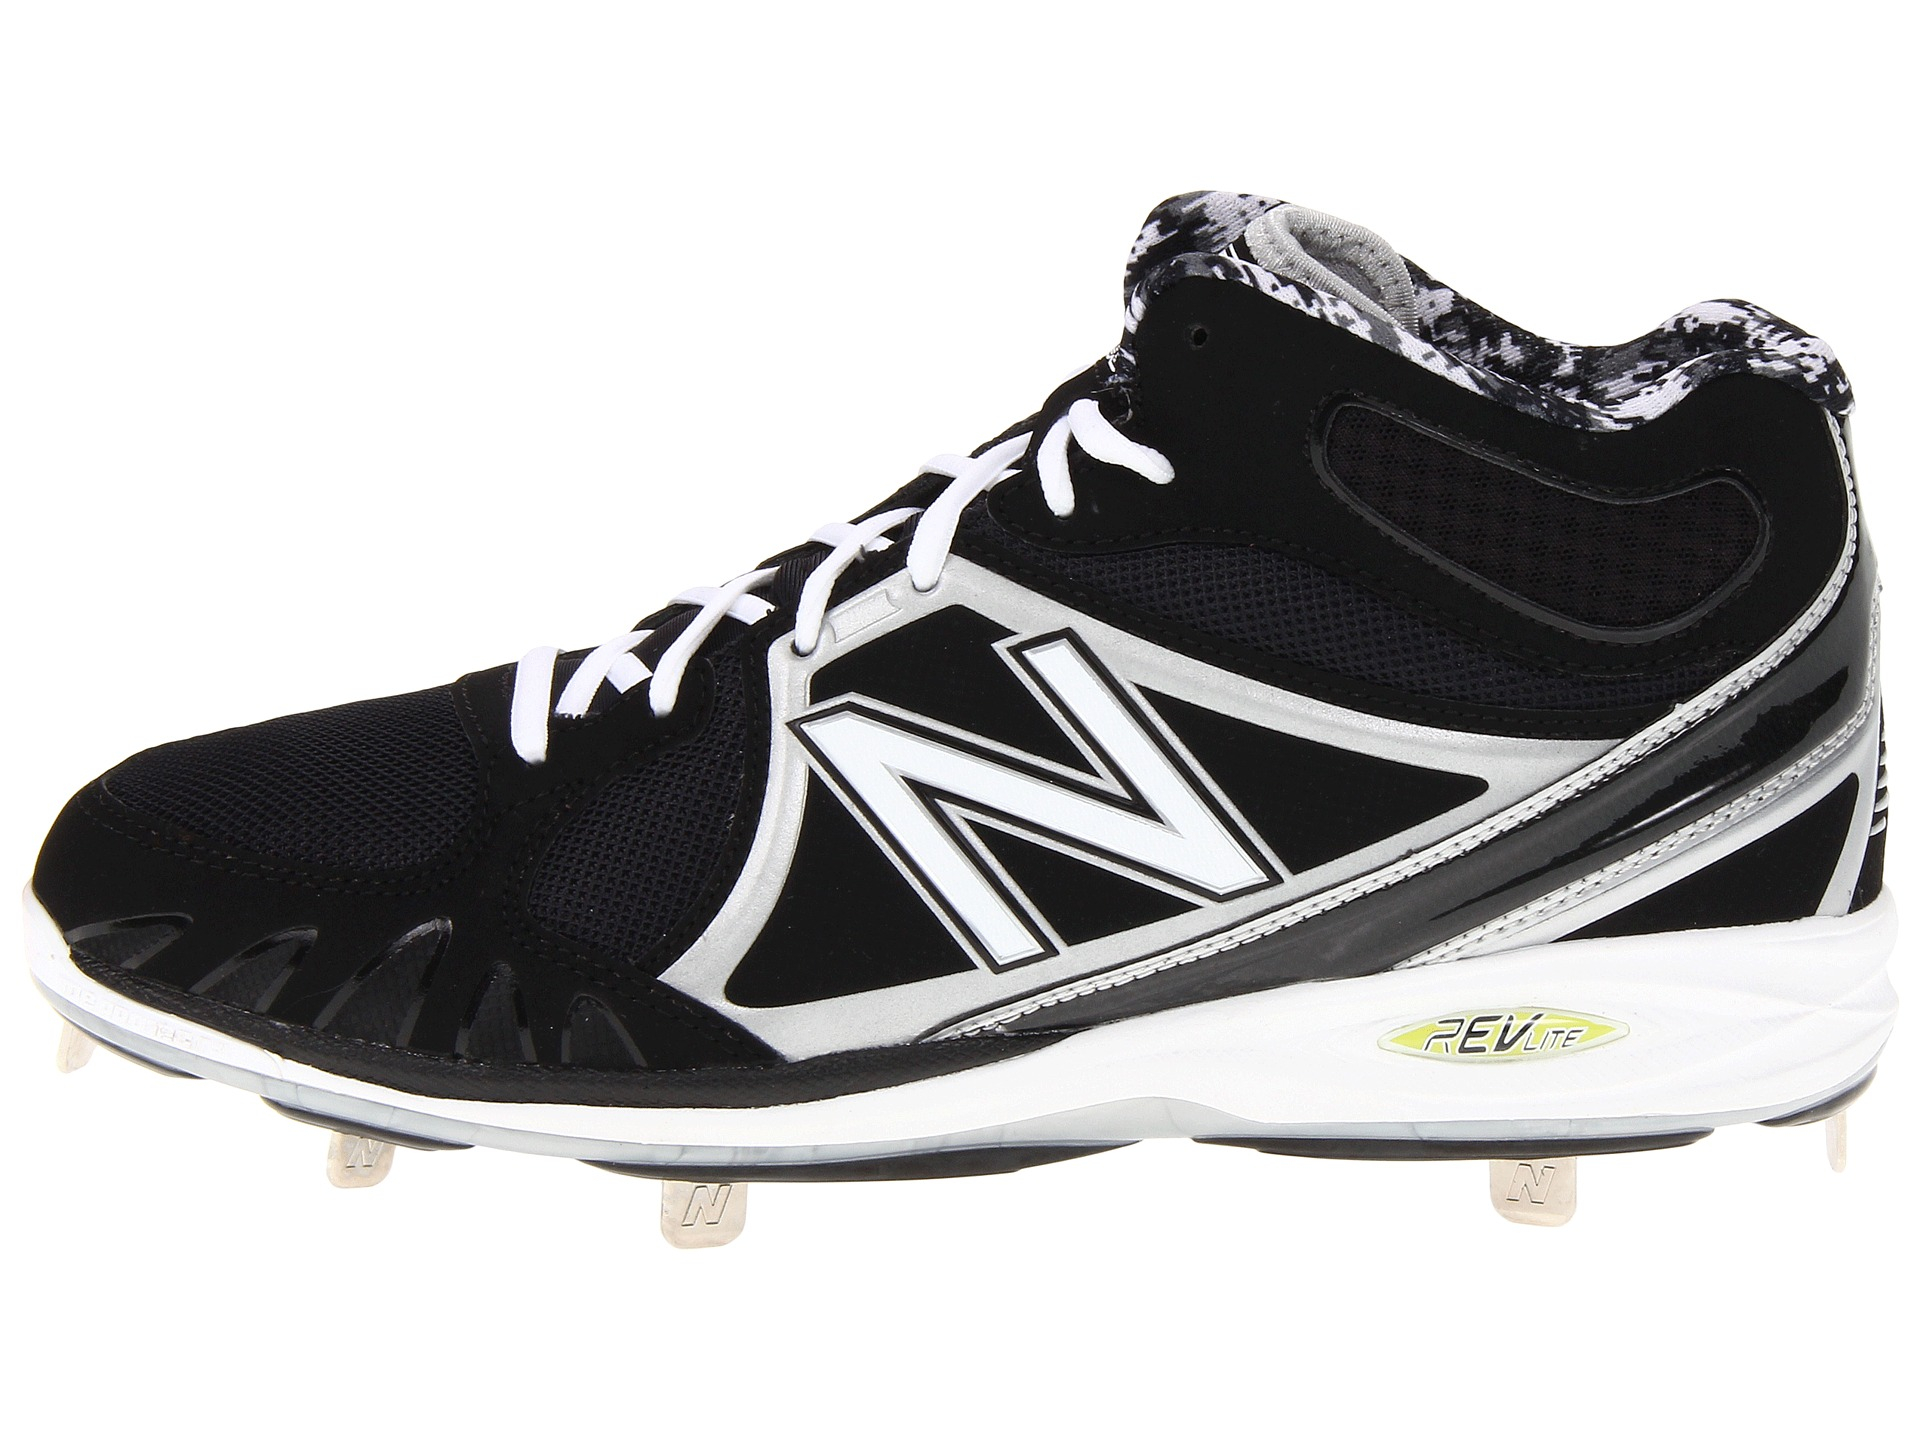 dab25060eb833 Lyst - New Balance Mb3000 Metal Mid-cut Cleat in Black for Men